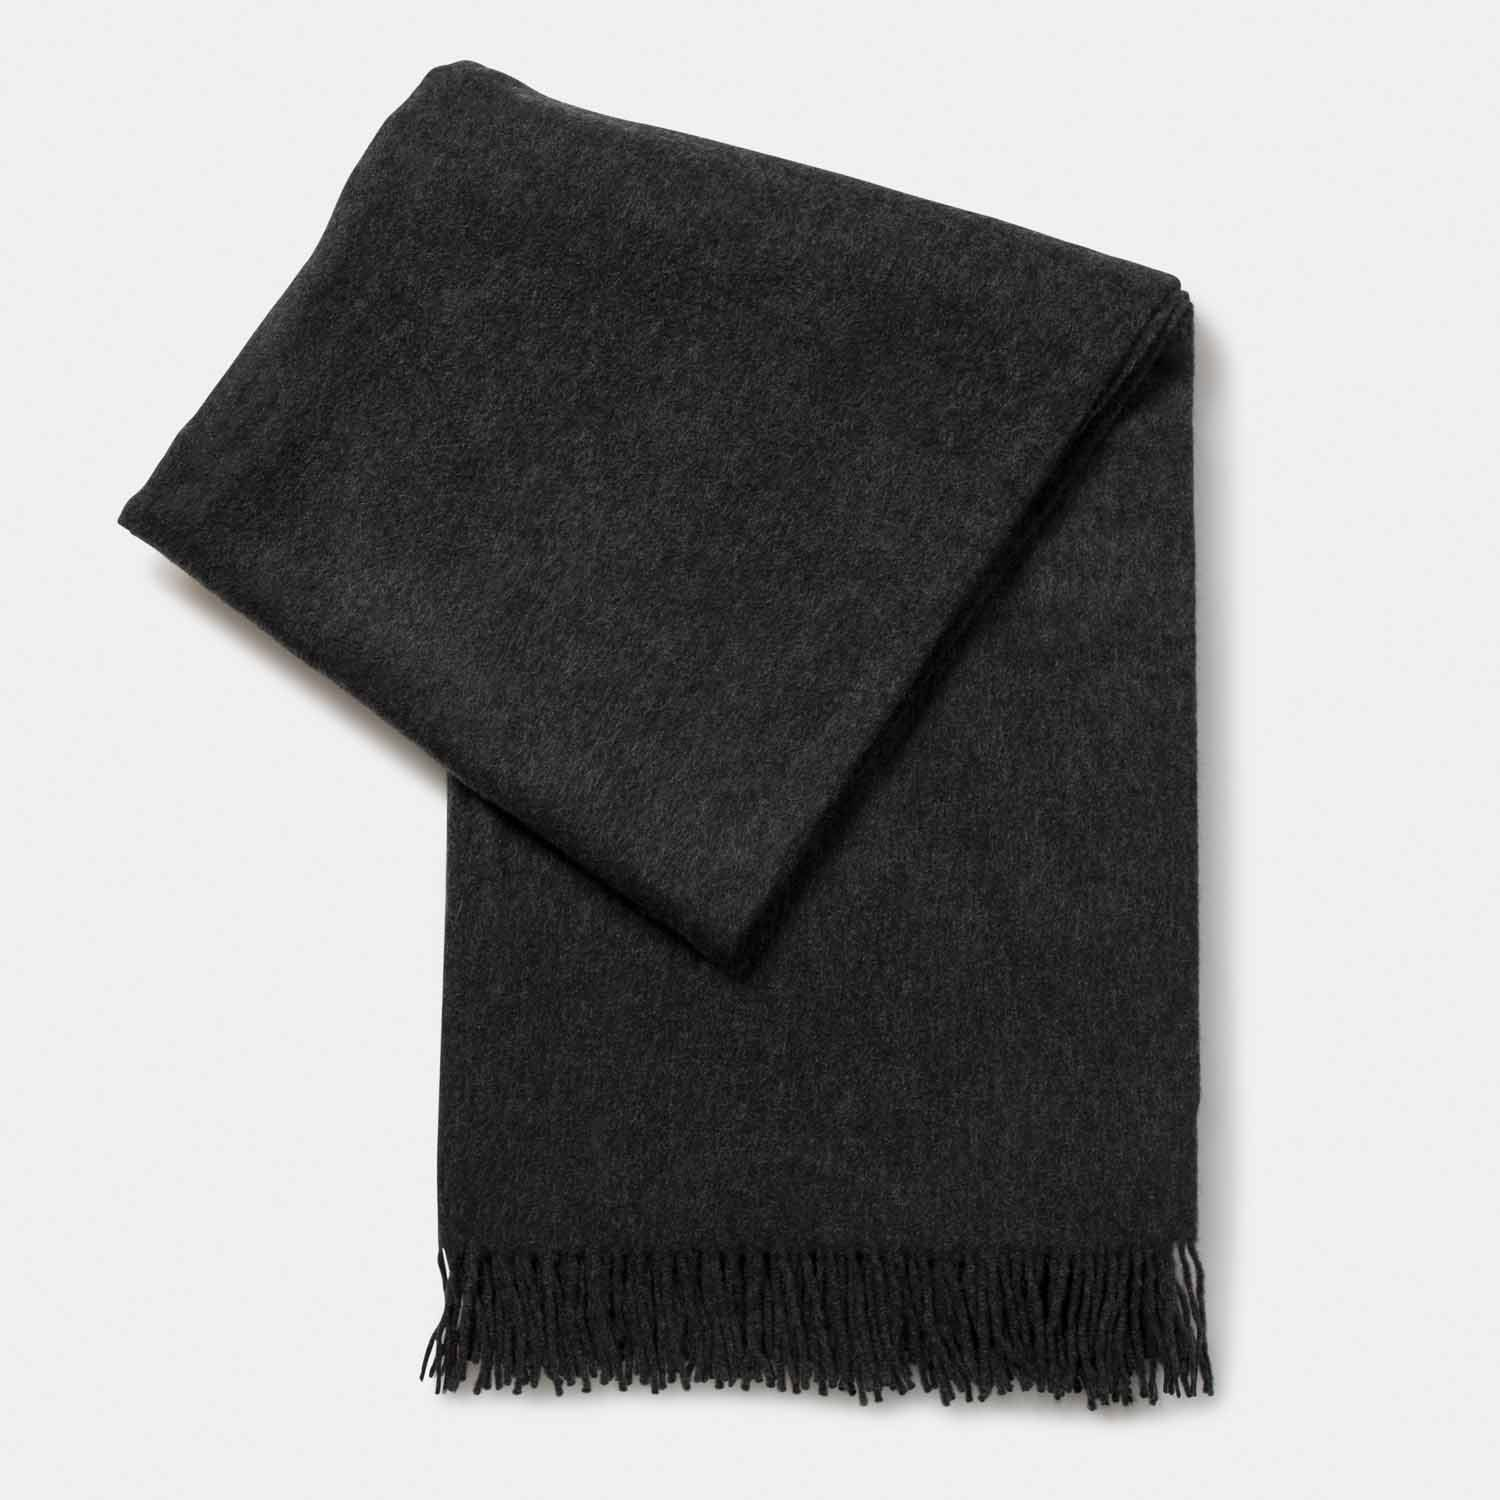 Amicale Cashmere Woven 100% Cashmere Throw